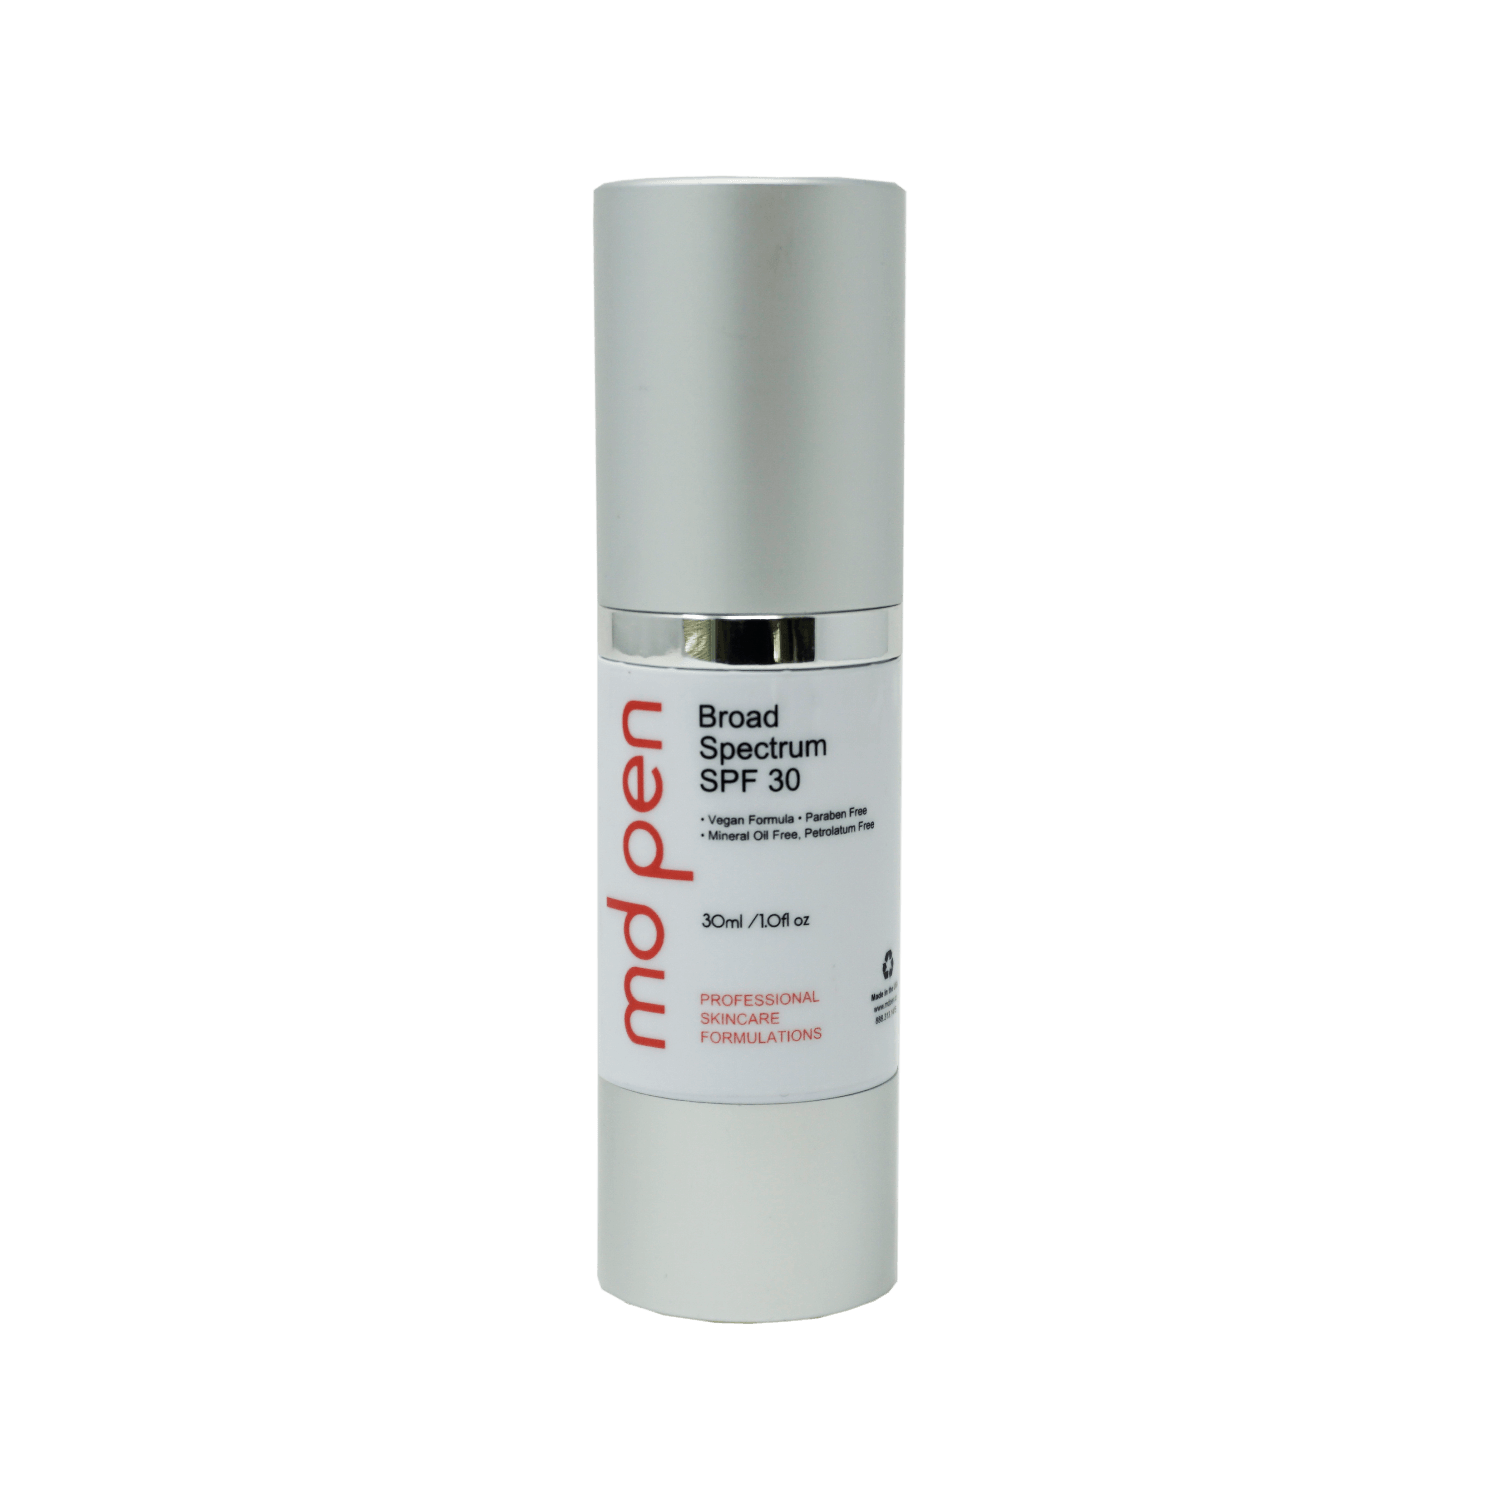 Broad Spectrum SPF 30